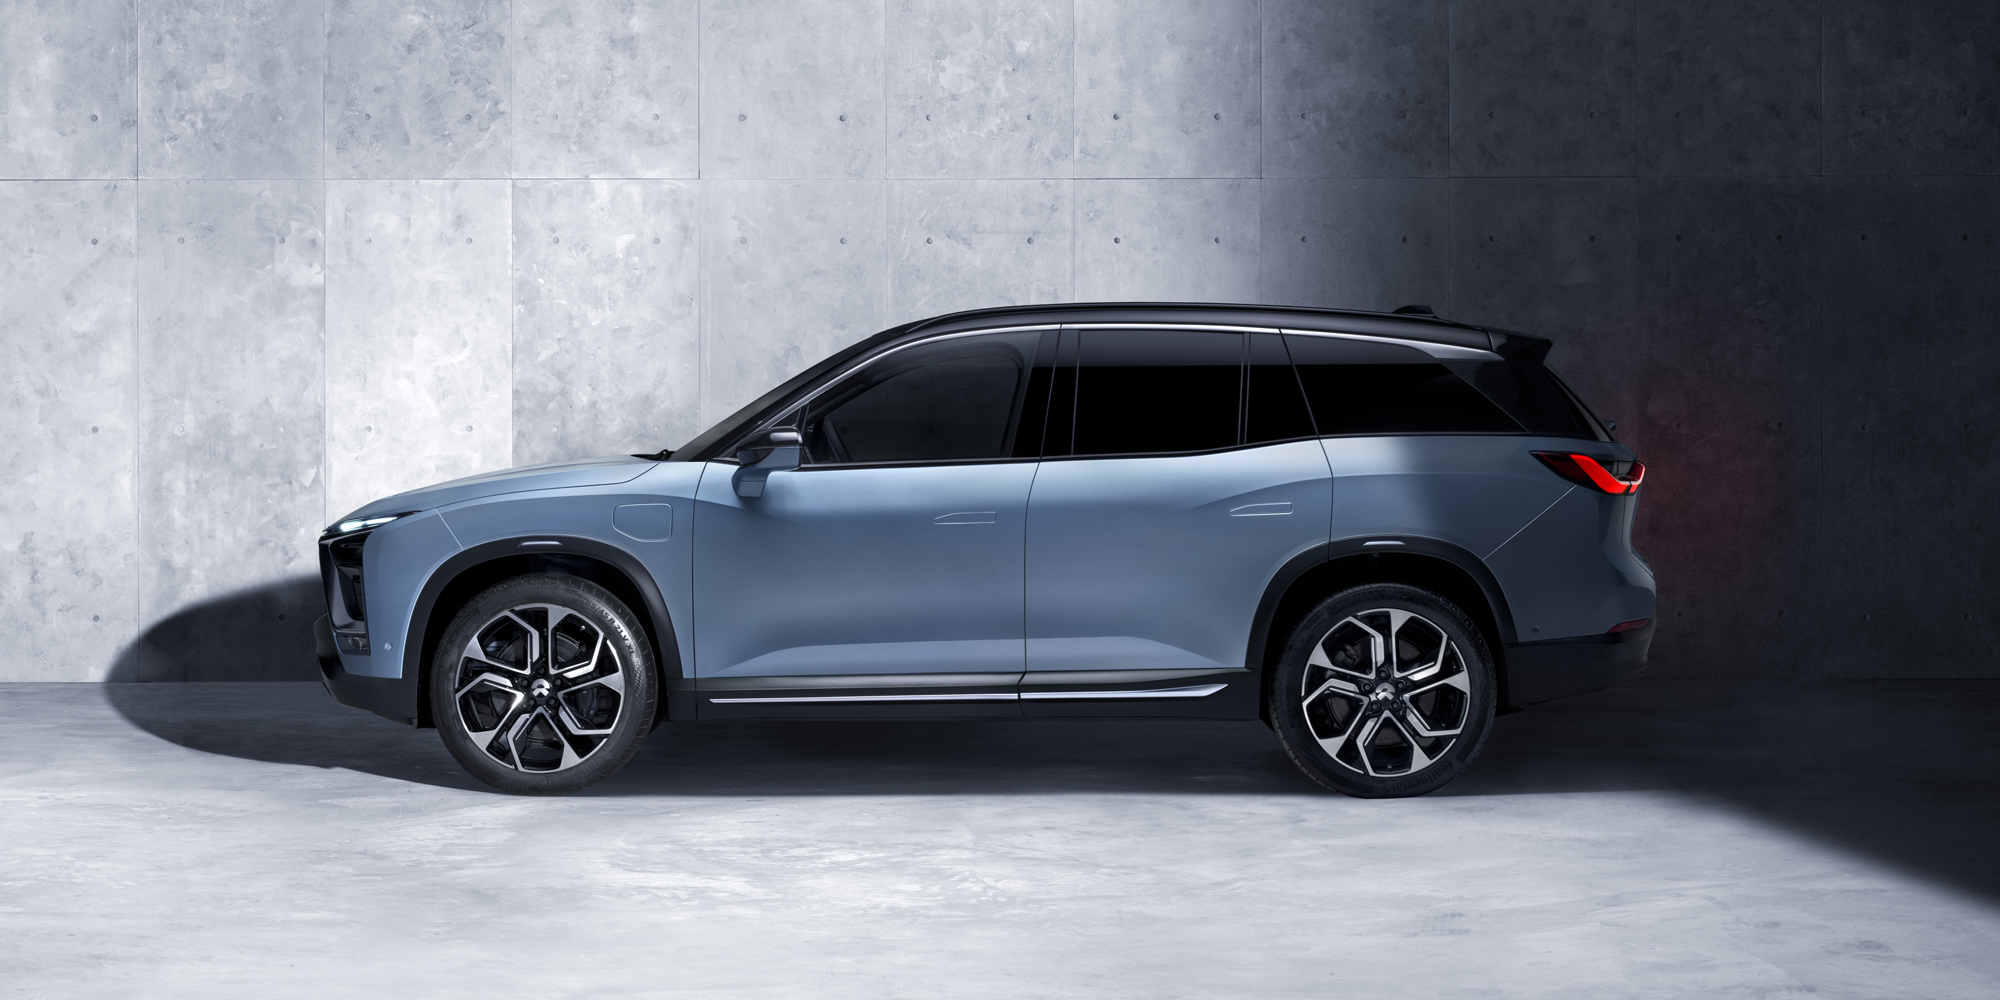 7 Seater Electric Car The Nio Es8 Is A Seven Seater High Performance Electric Suv